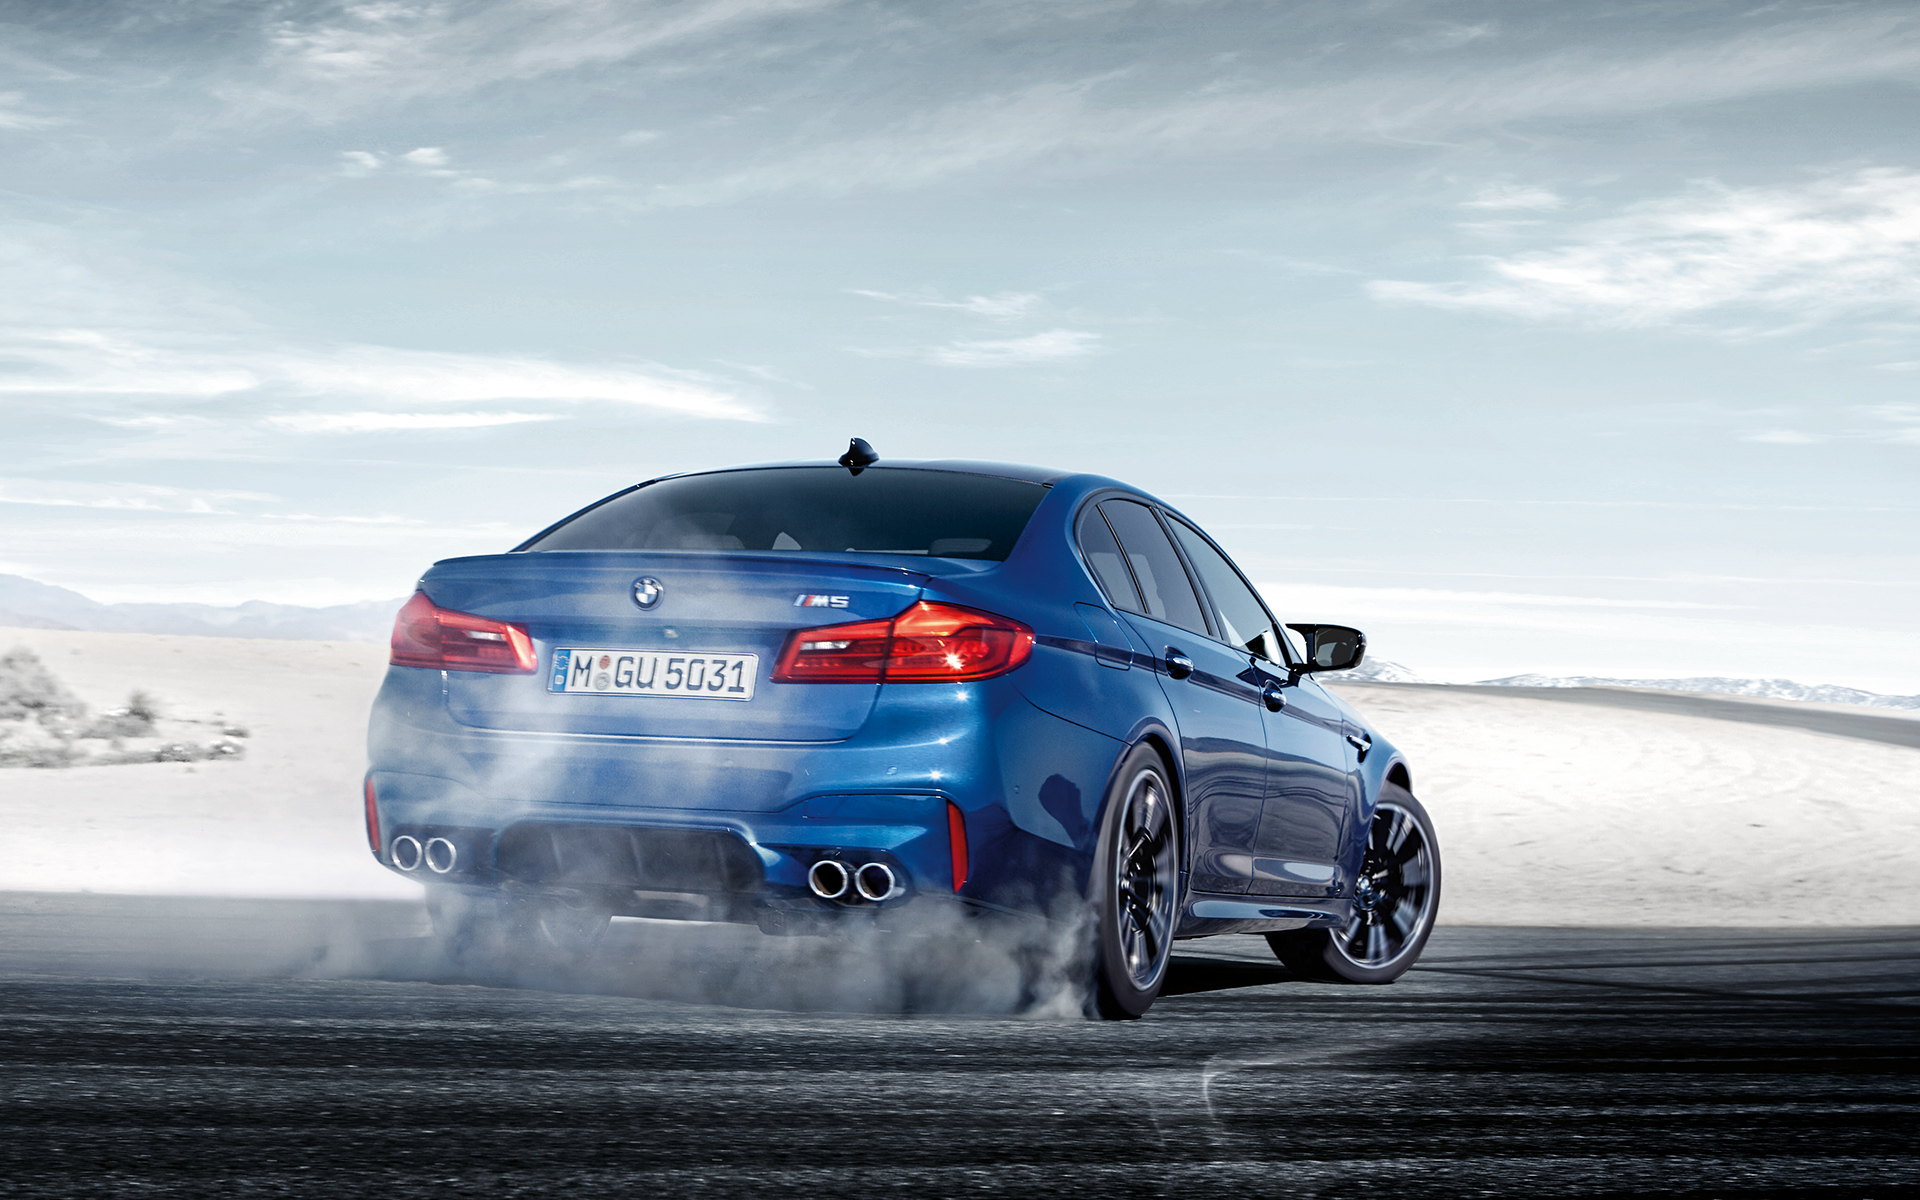 BMW M-Series M5 Sedan in blue: drifting on the snow